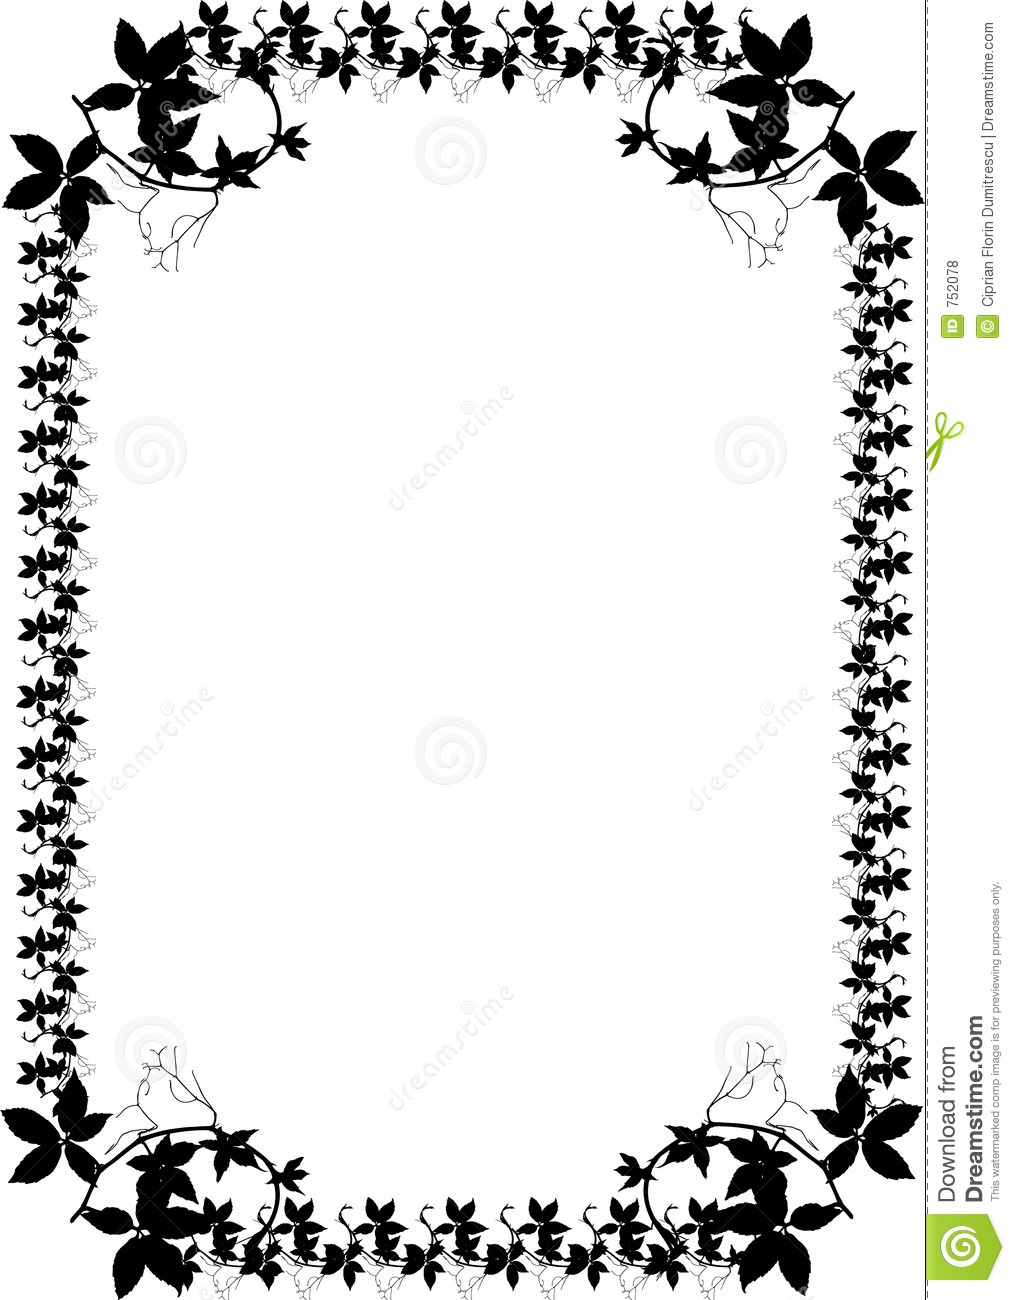 19 Black Border Designs Cool Images - Black and White ...